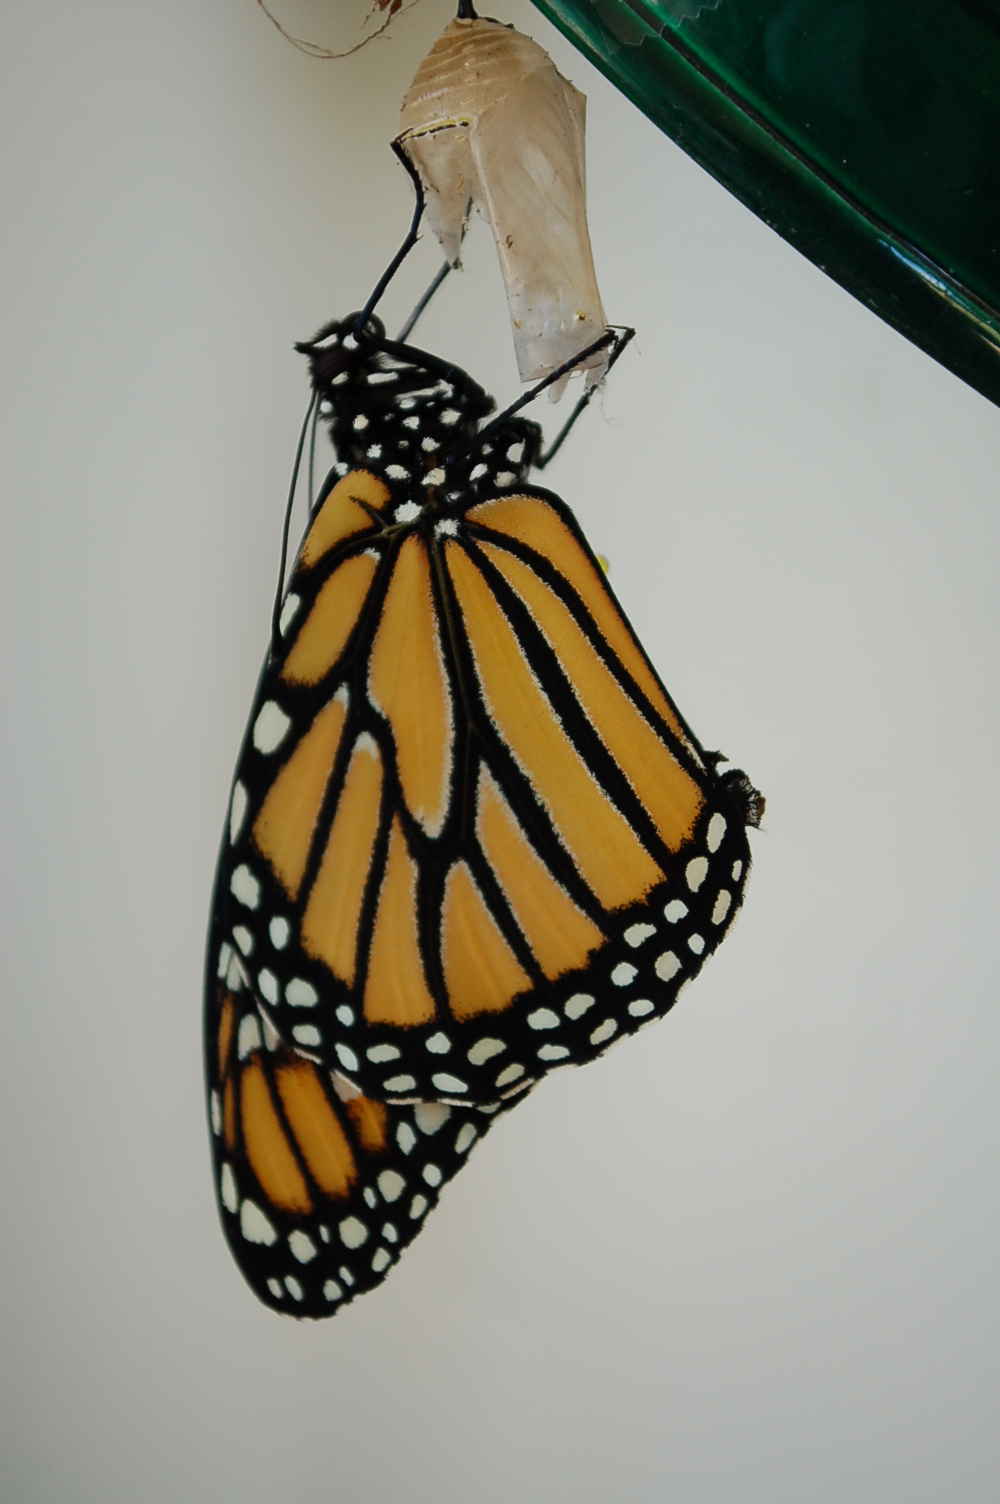 Newly hatched Monarch